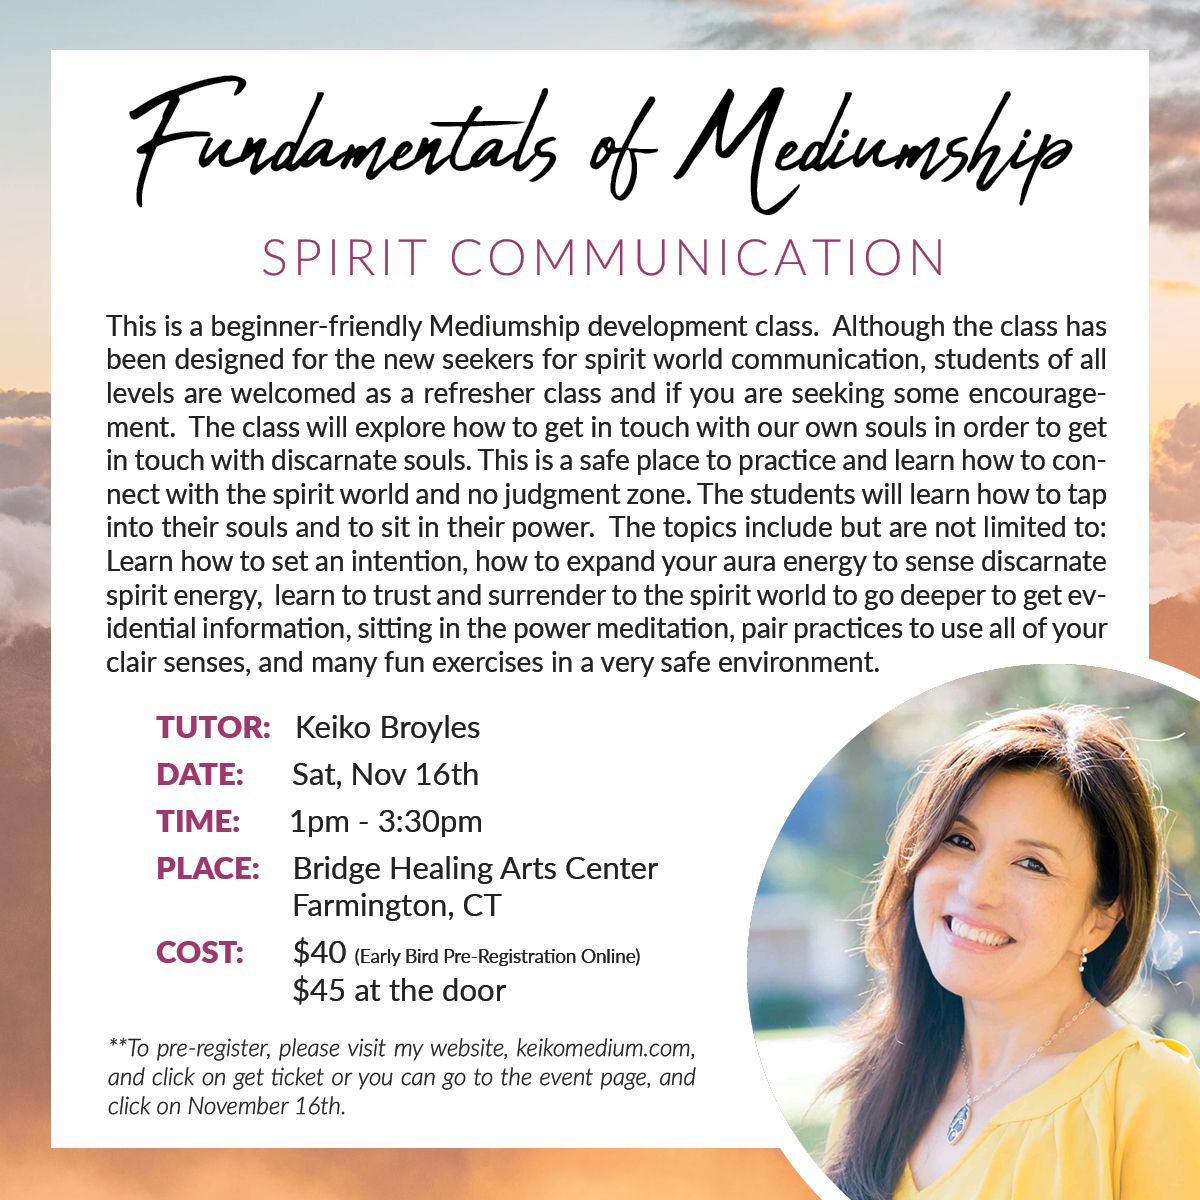 Fundamentals of Mediumship @ Bridge Healing Arts Center | Farmington | Connecticut | United States